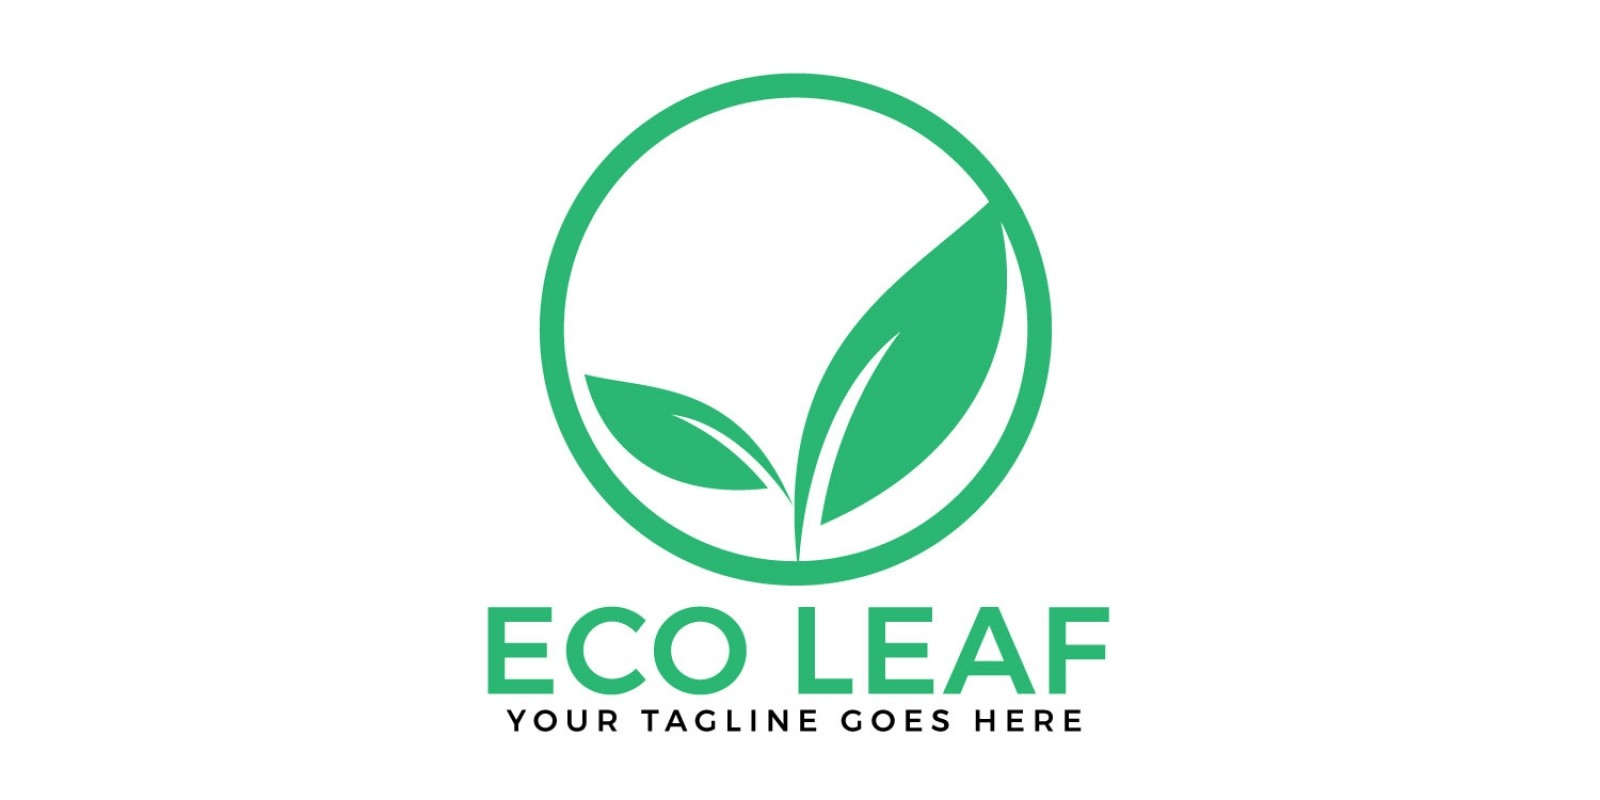 Eco Leaf Vector Logo Design.